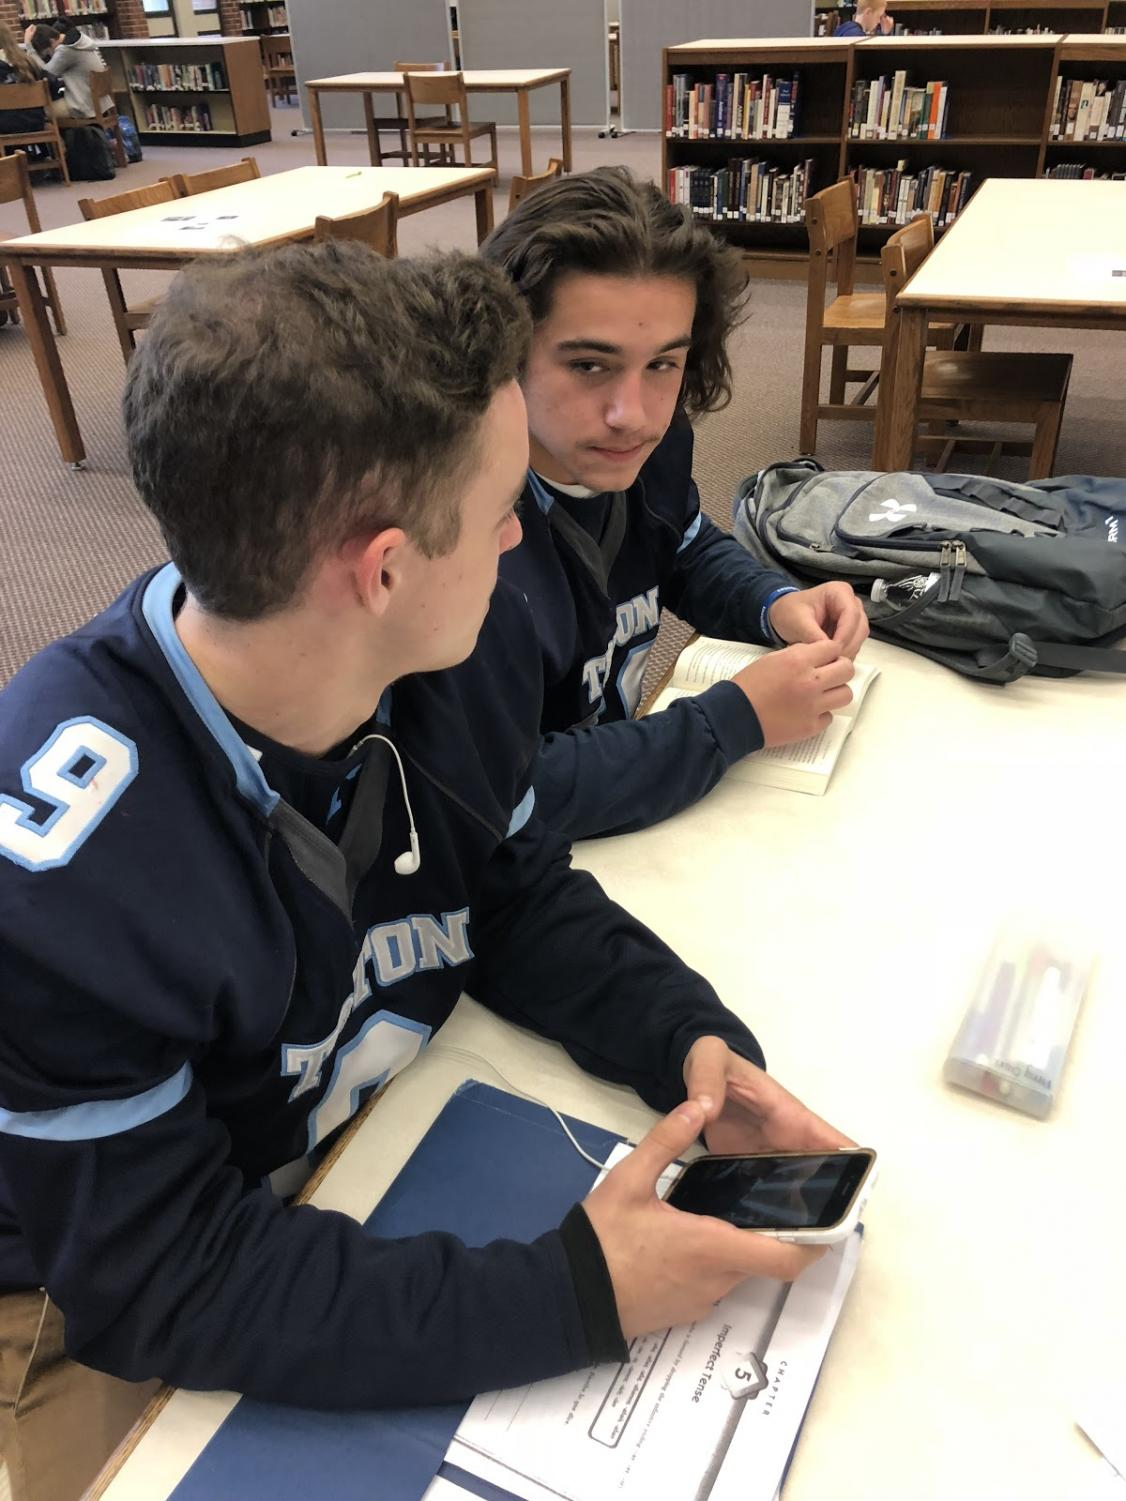 Triton Regional High School students Jack Crocker (left) and Jon Rolfe (right) discussing Brett Kavanaugh.